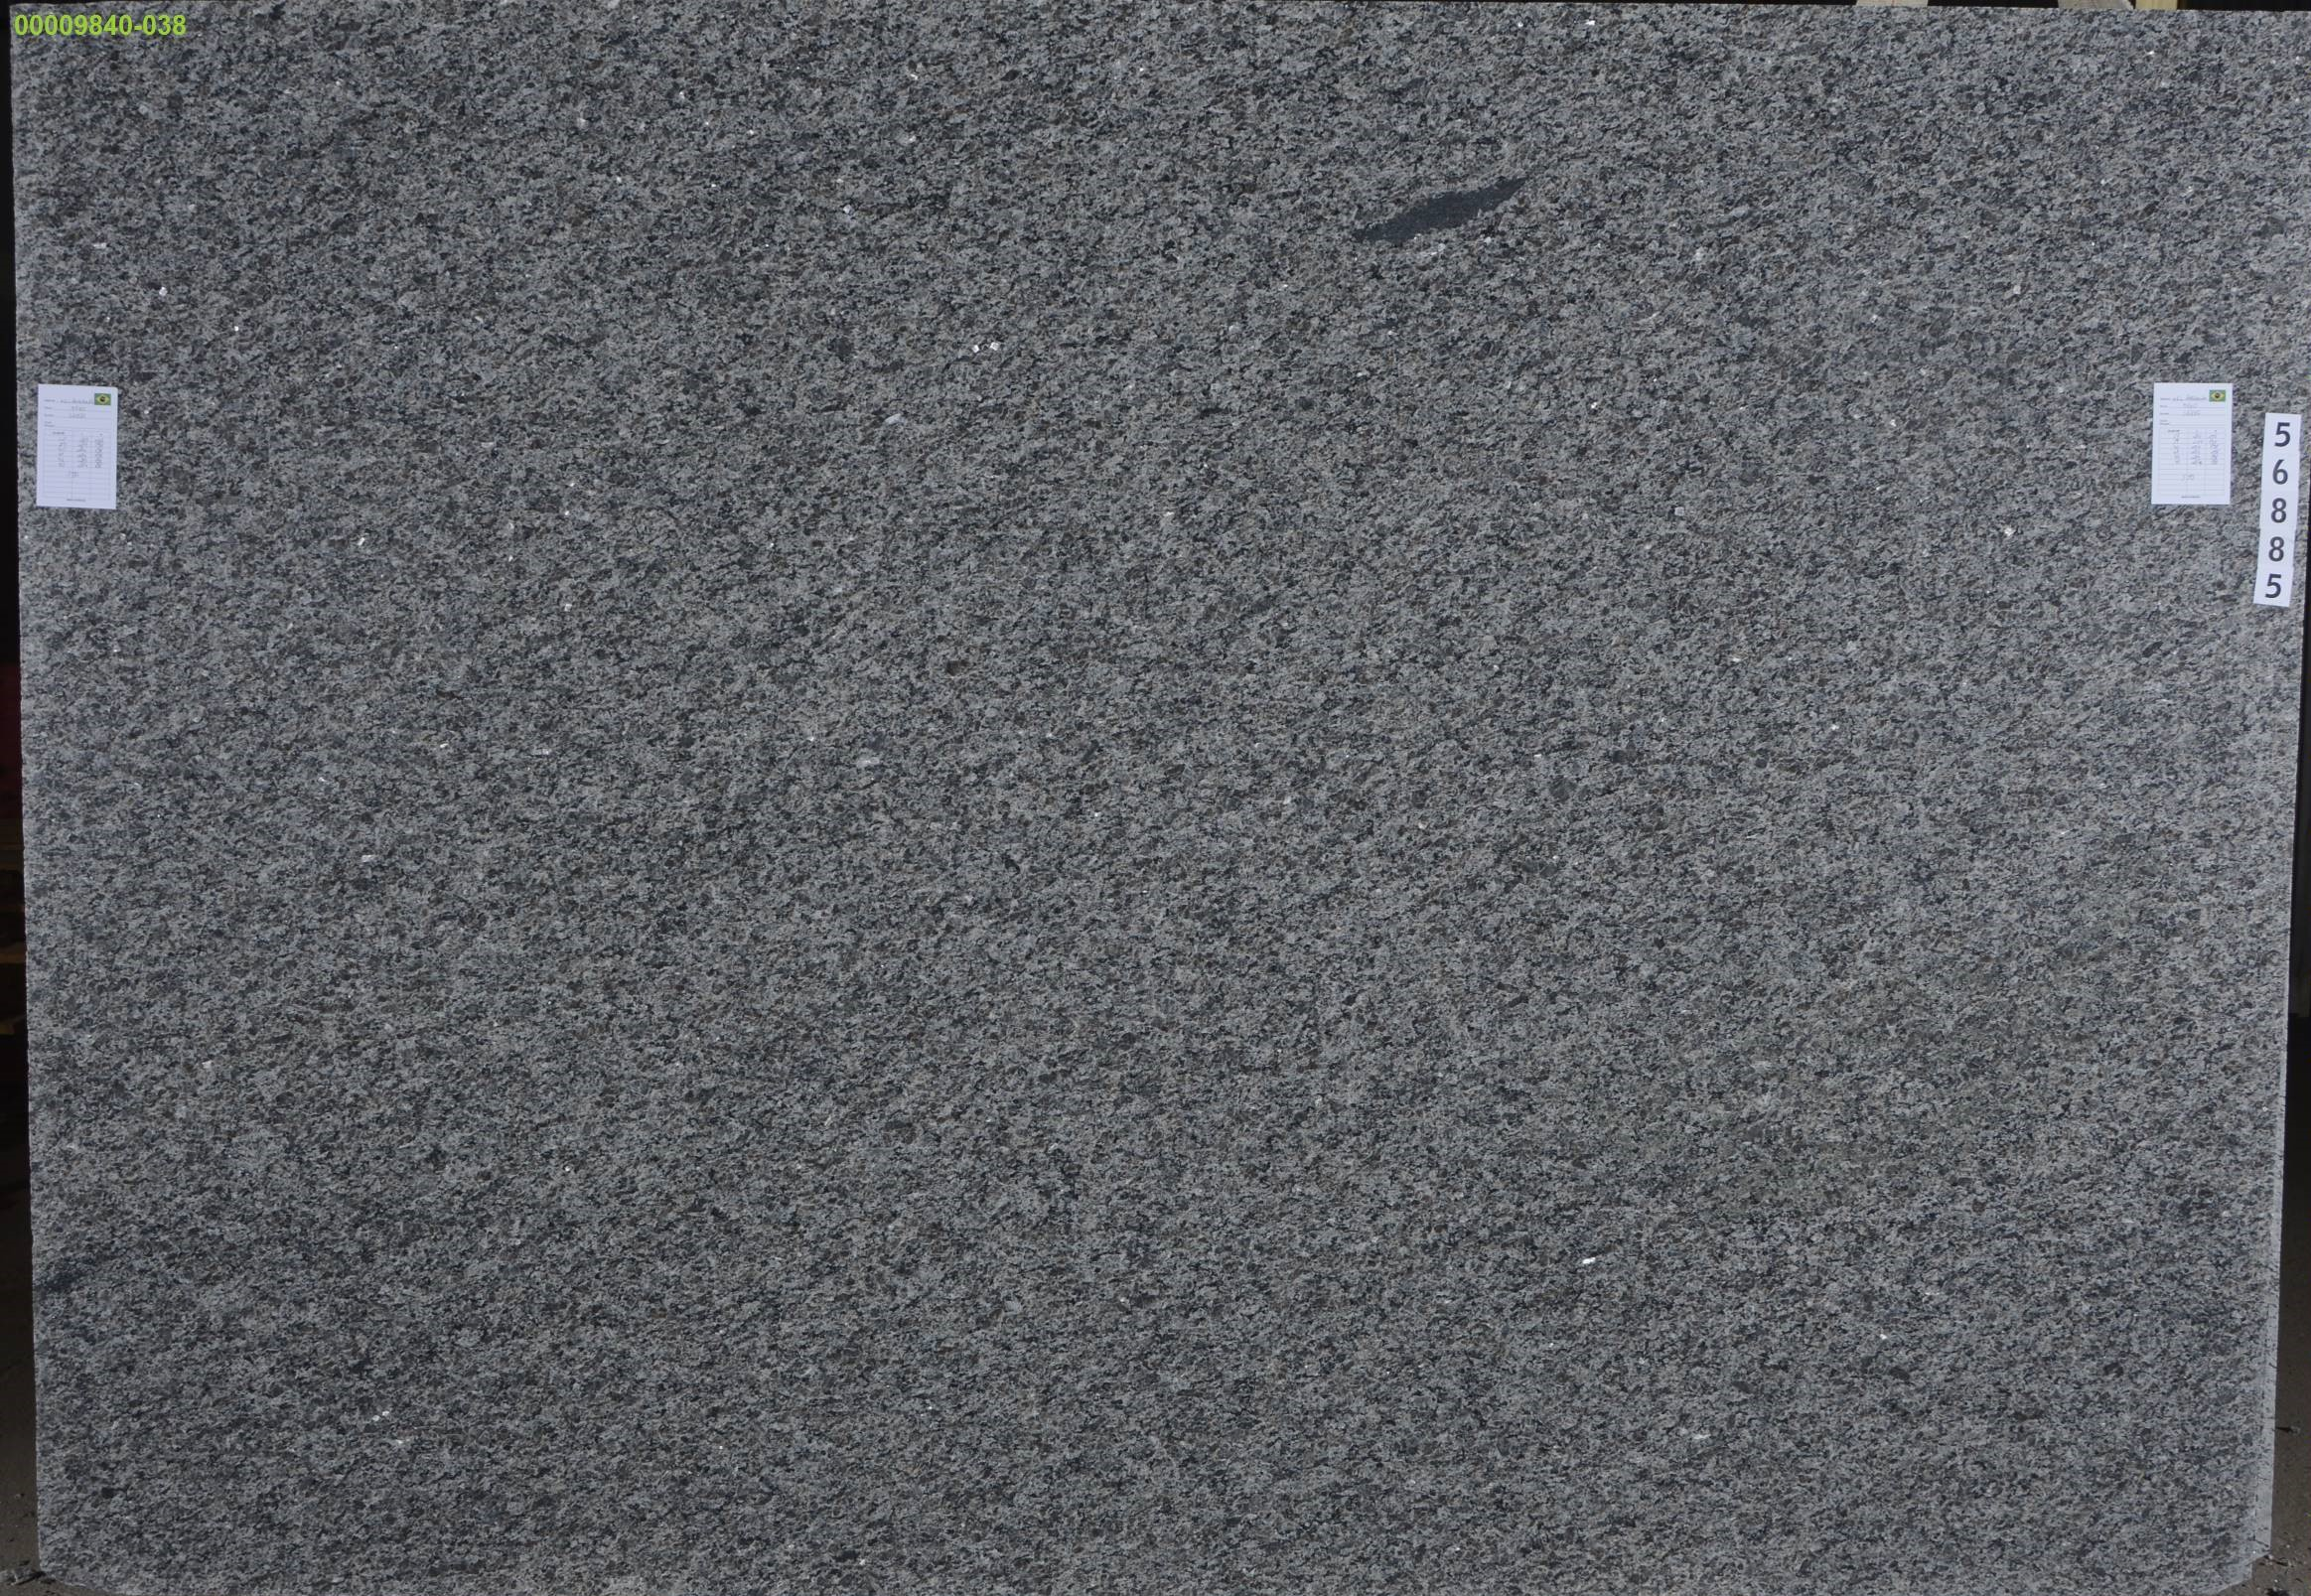 https://palmbeachcountertops.com/wp-content/uploads/2019/02/New-Caledonia-Granite-1.jpg